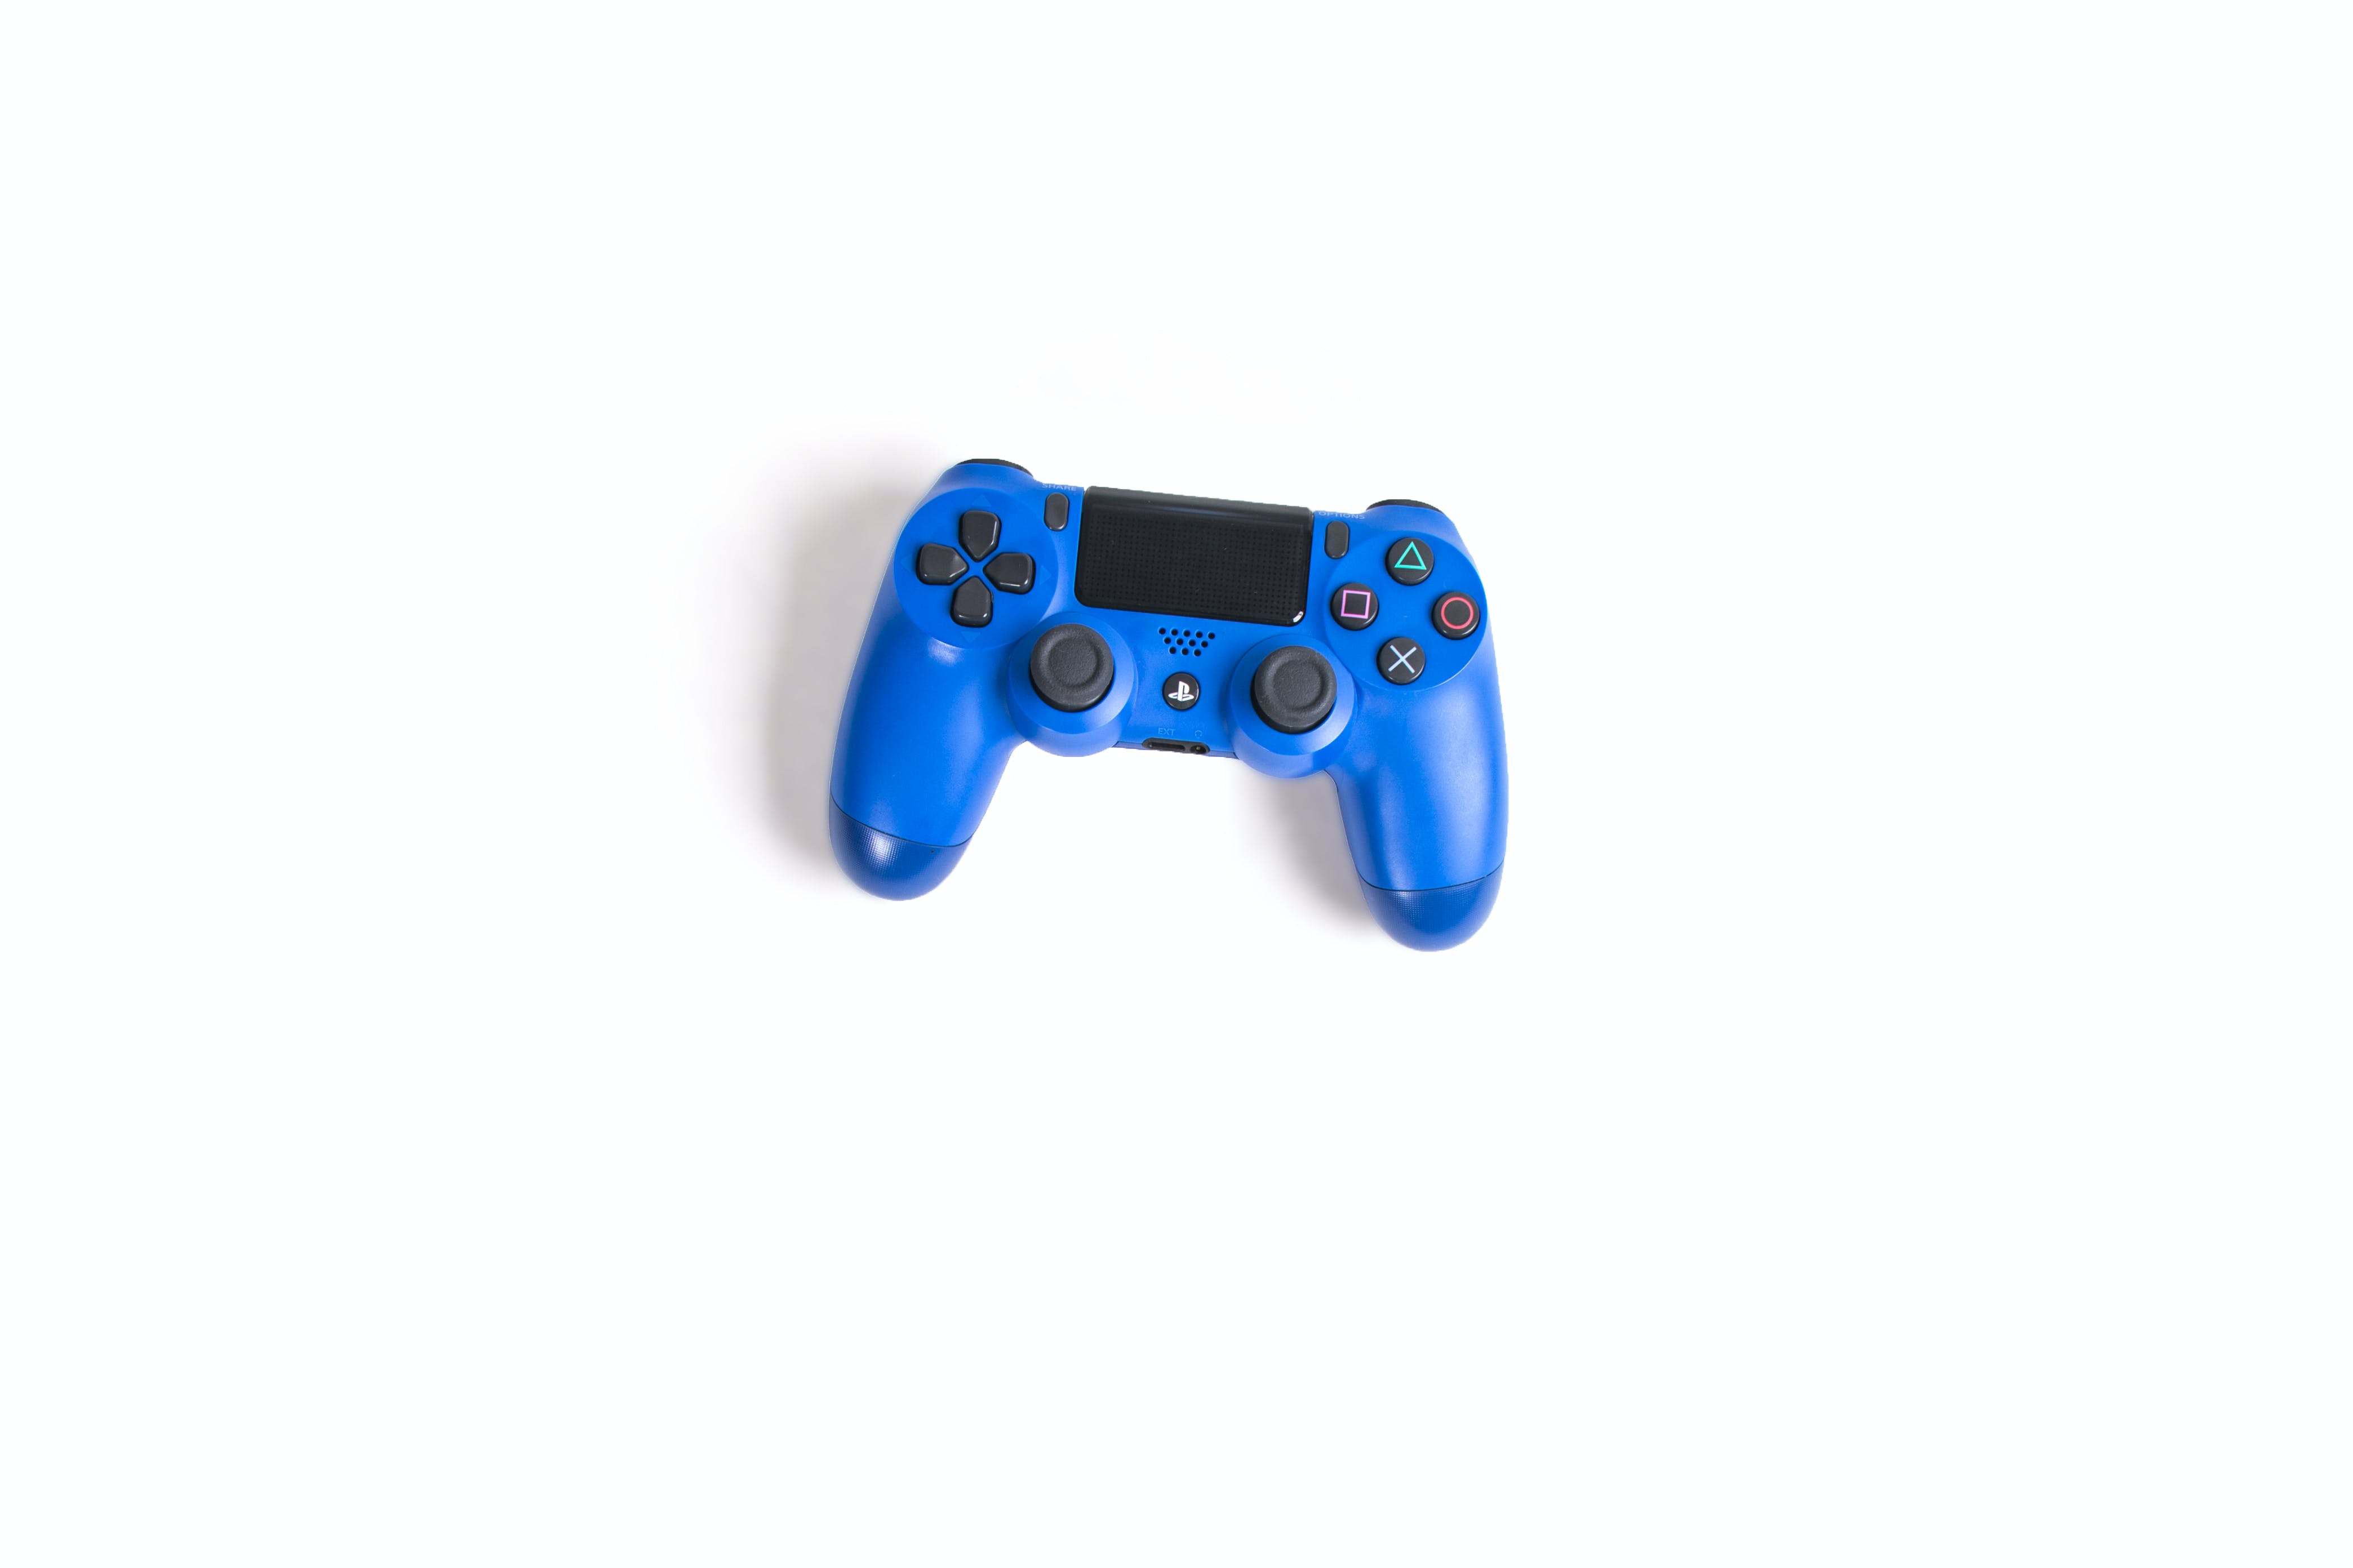 Blue Sony Dualshock 4 on White Surface